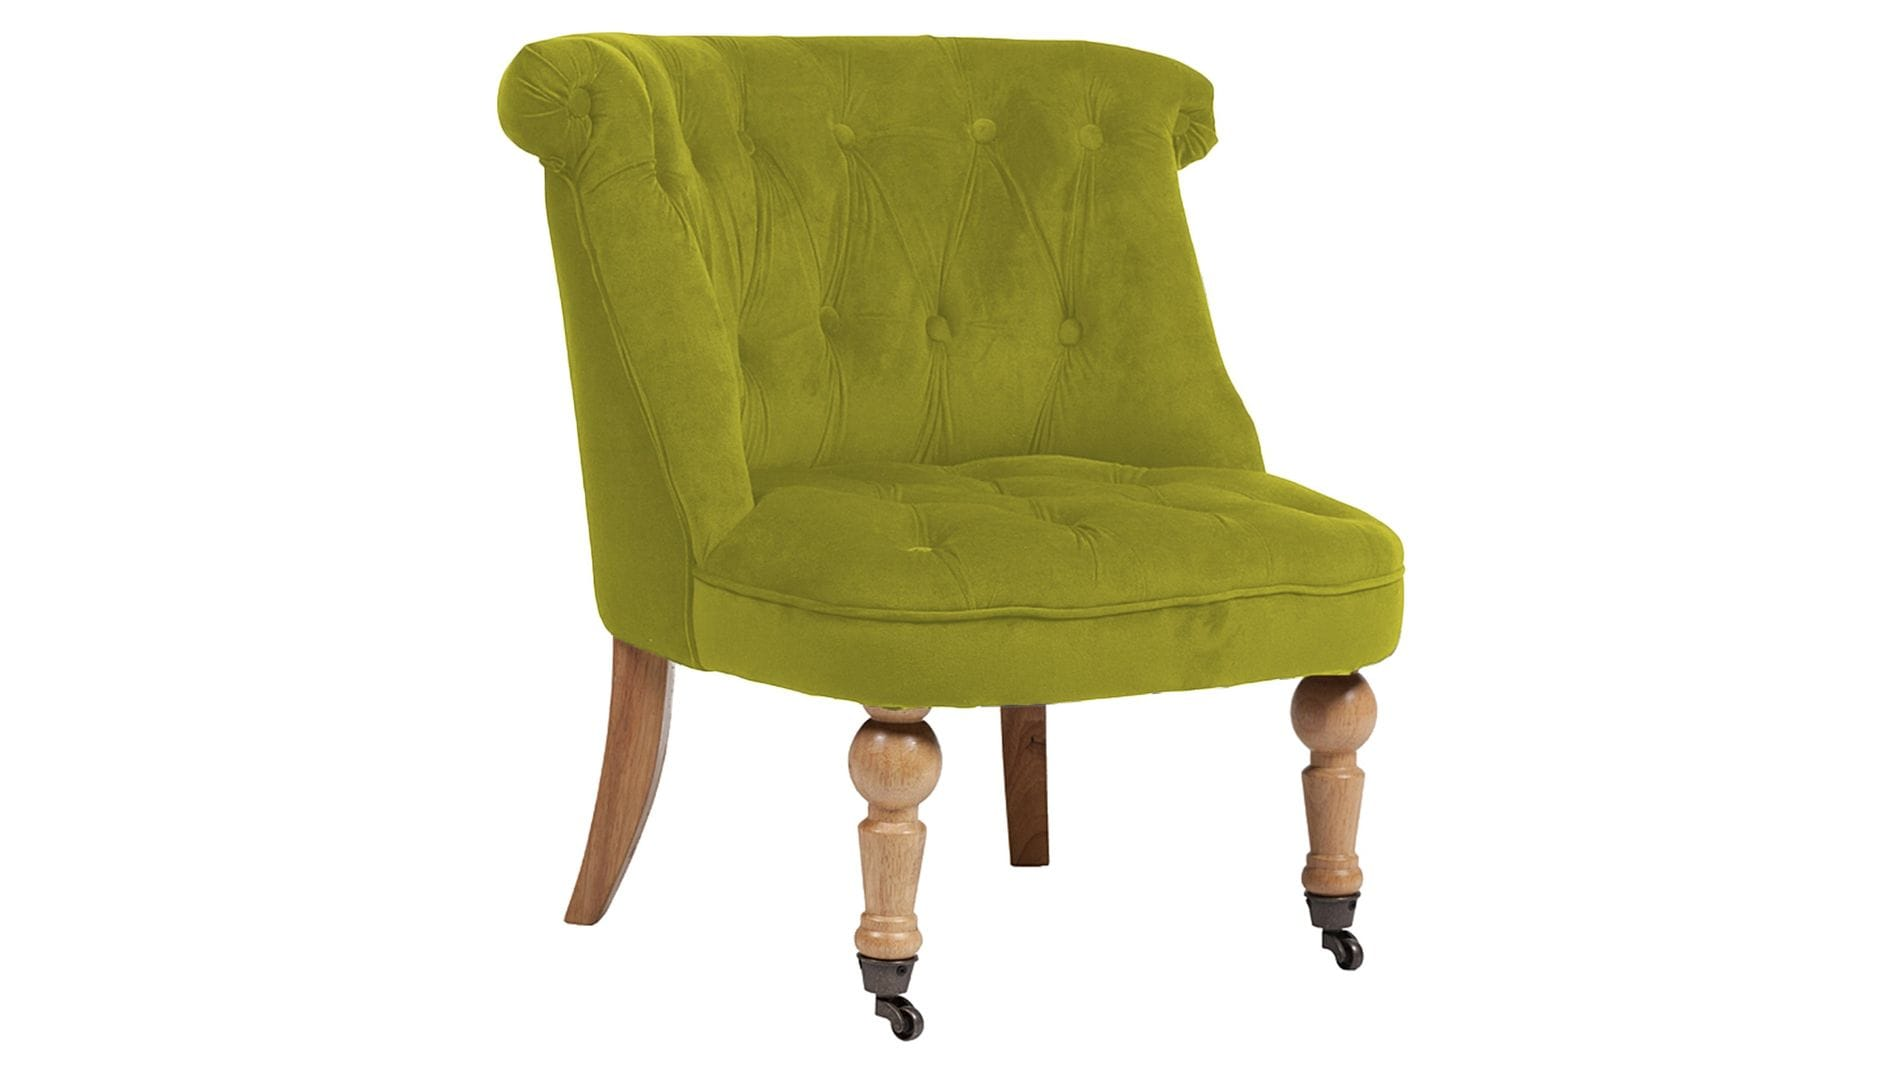 Кресло Amelie French Country Chair Оливковый Велюр М